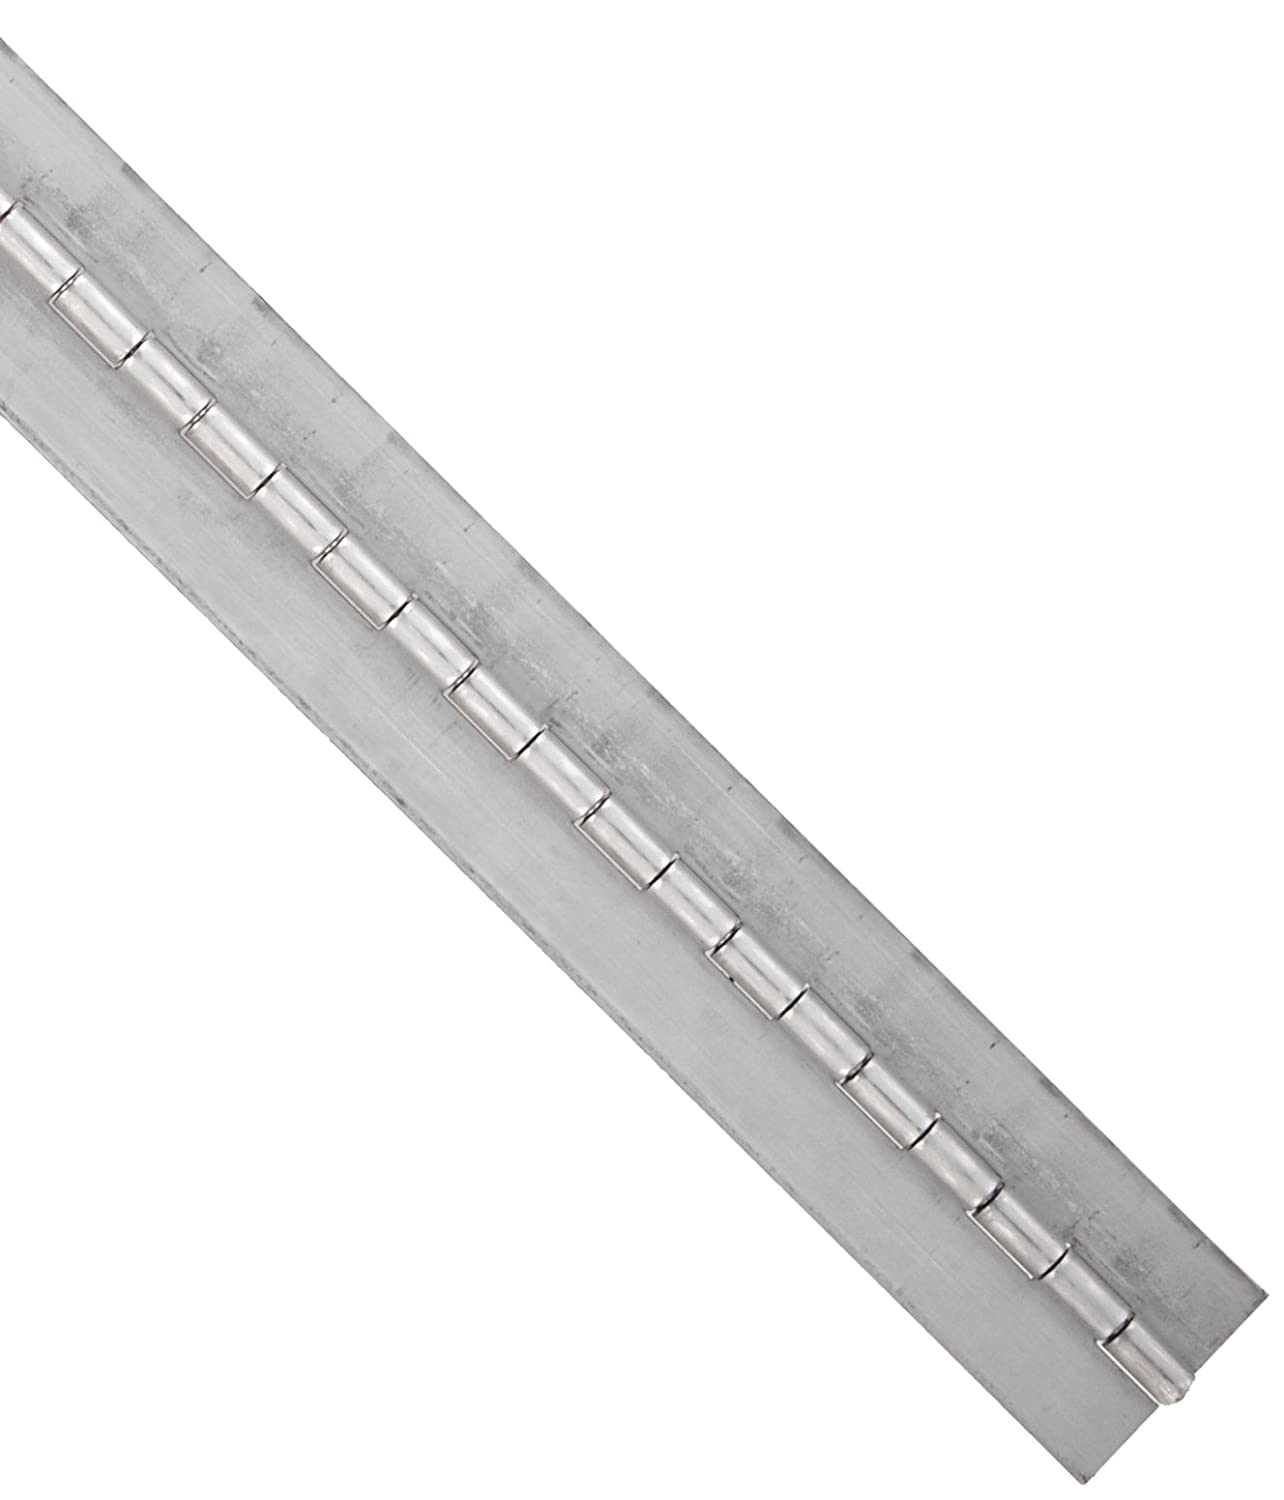 Max 55% OFF Steel Continuous Hinge without Electro-Galvanized New Shipping Free Holes Finish